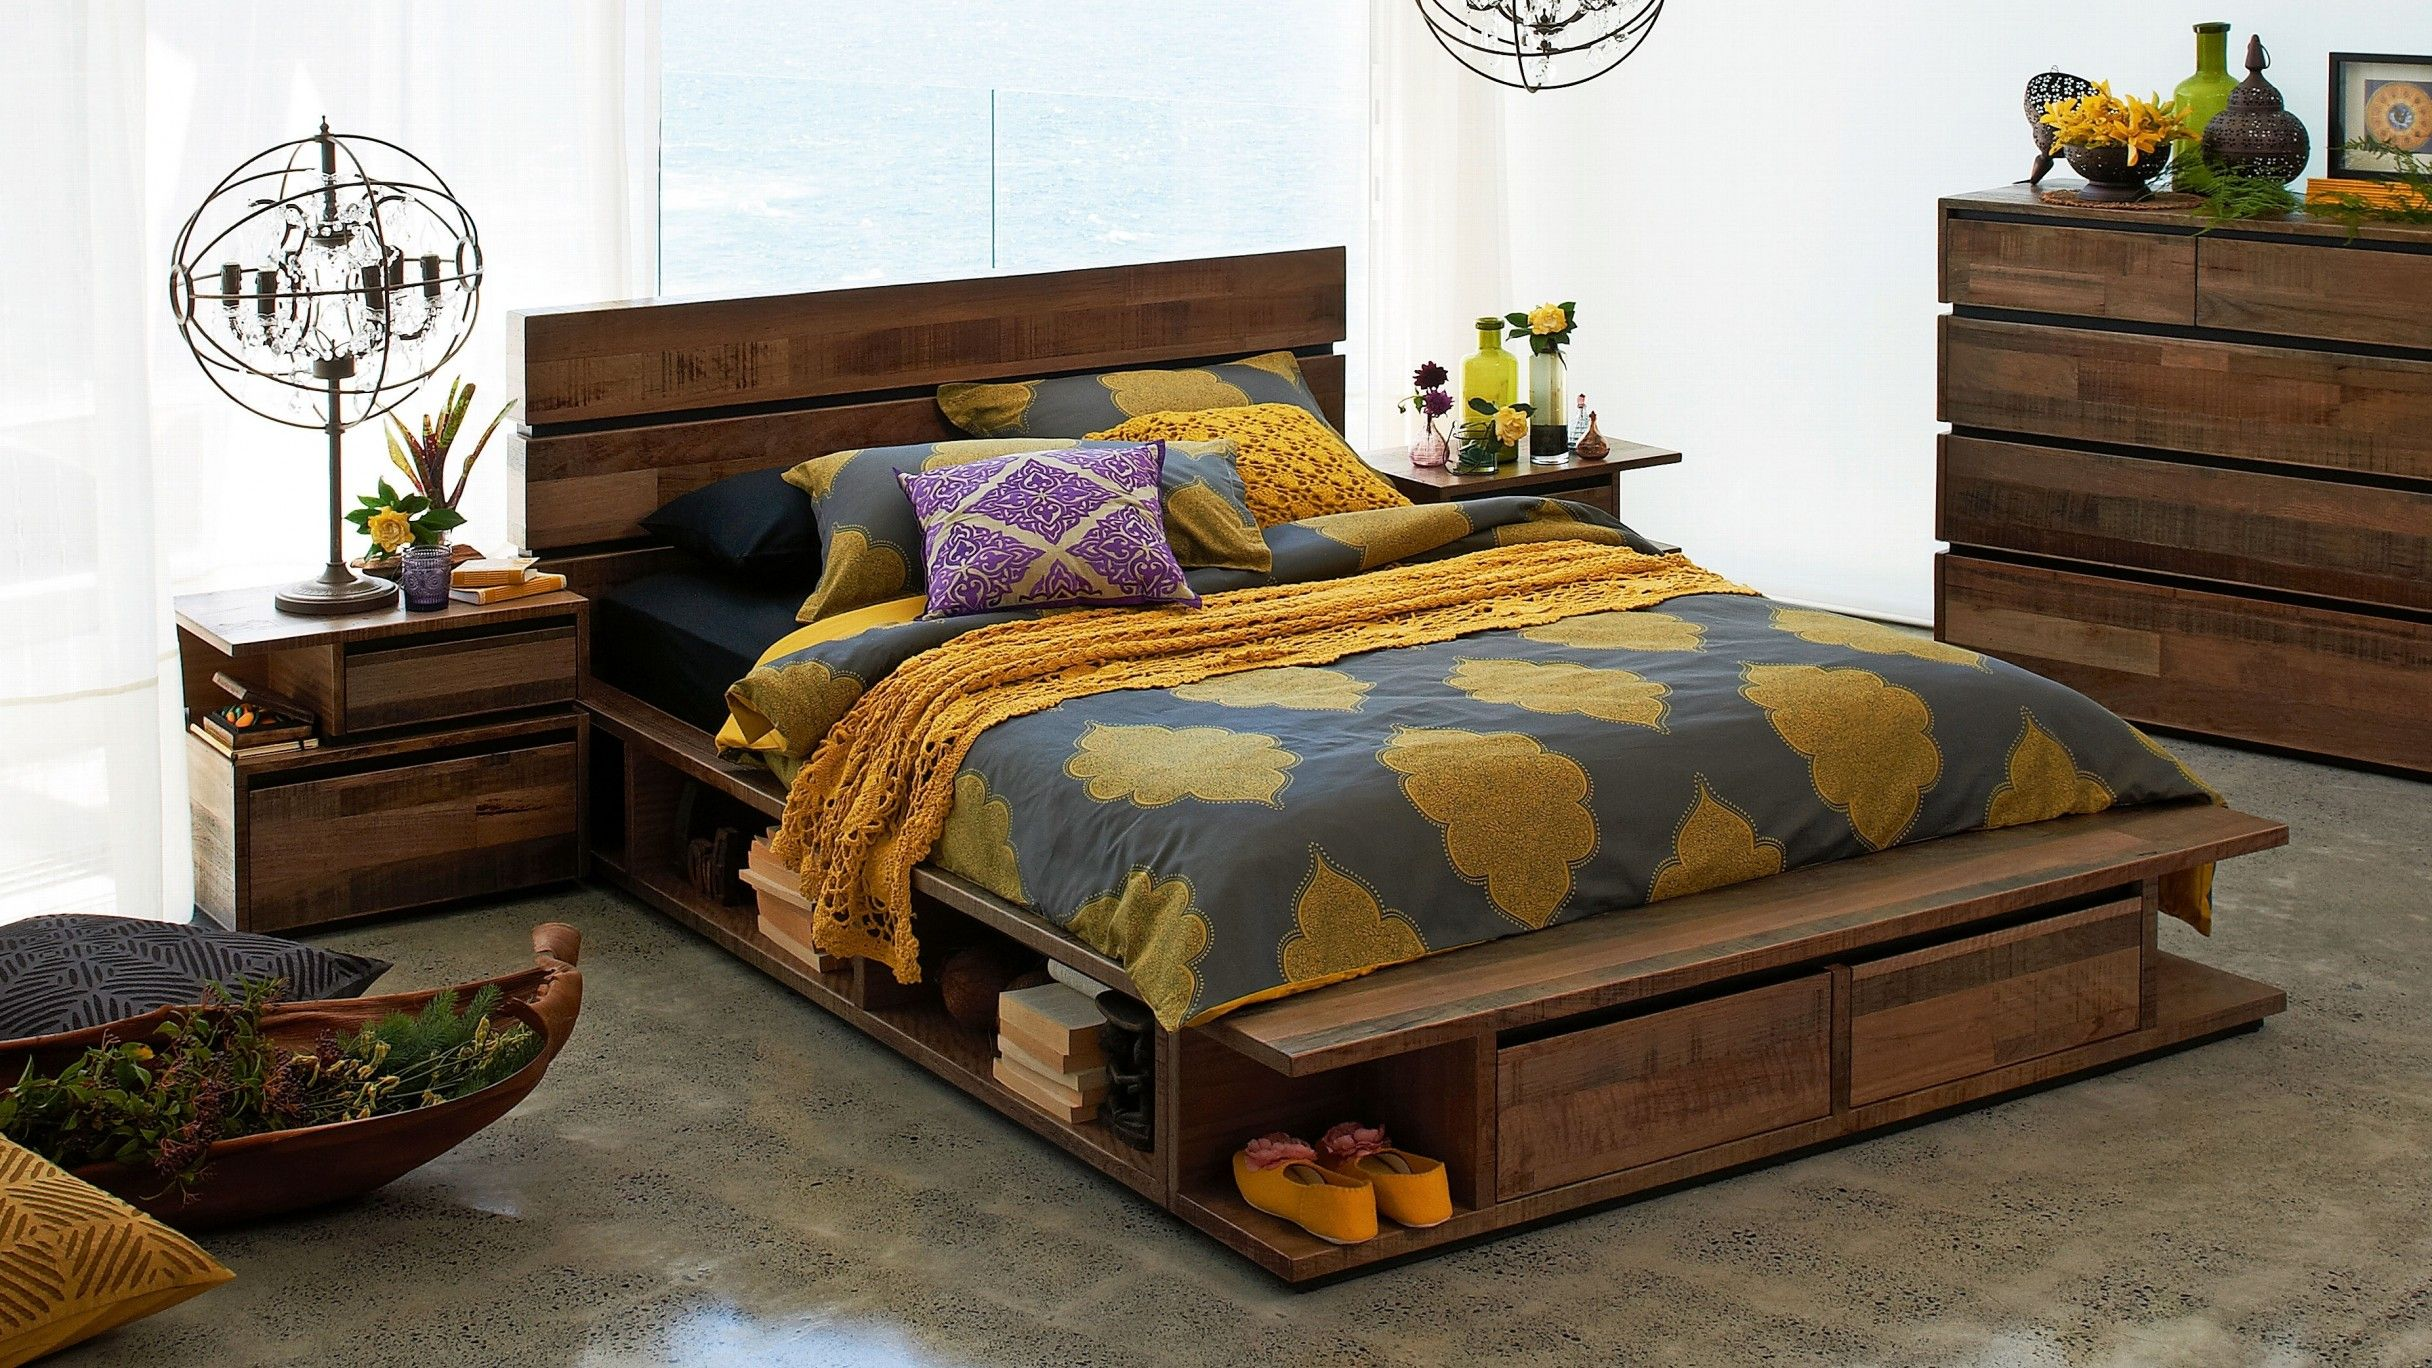 Random Low Queen Bed from Harvey Norman, with storage